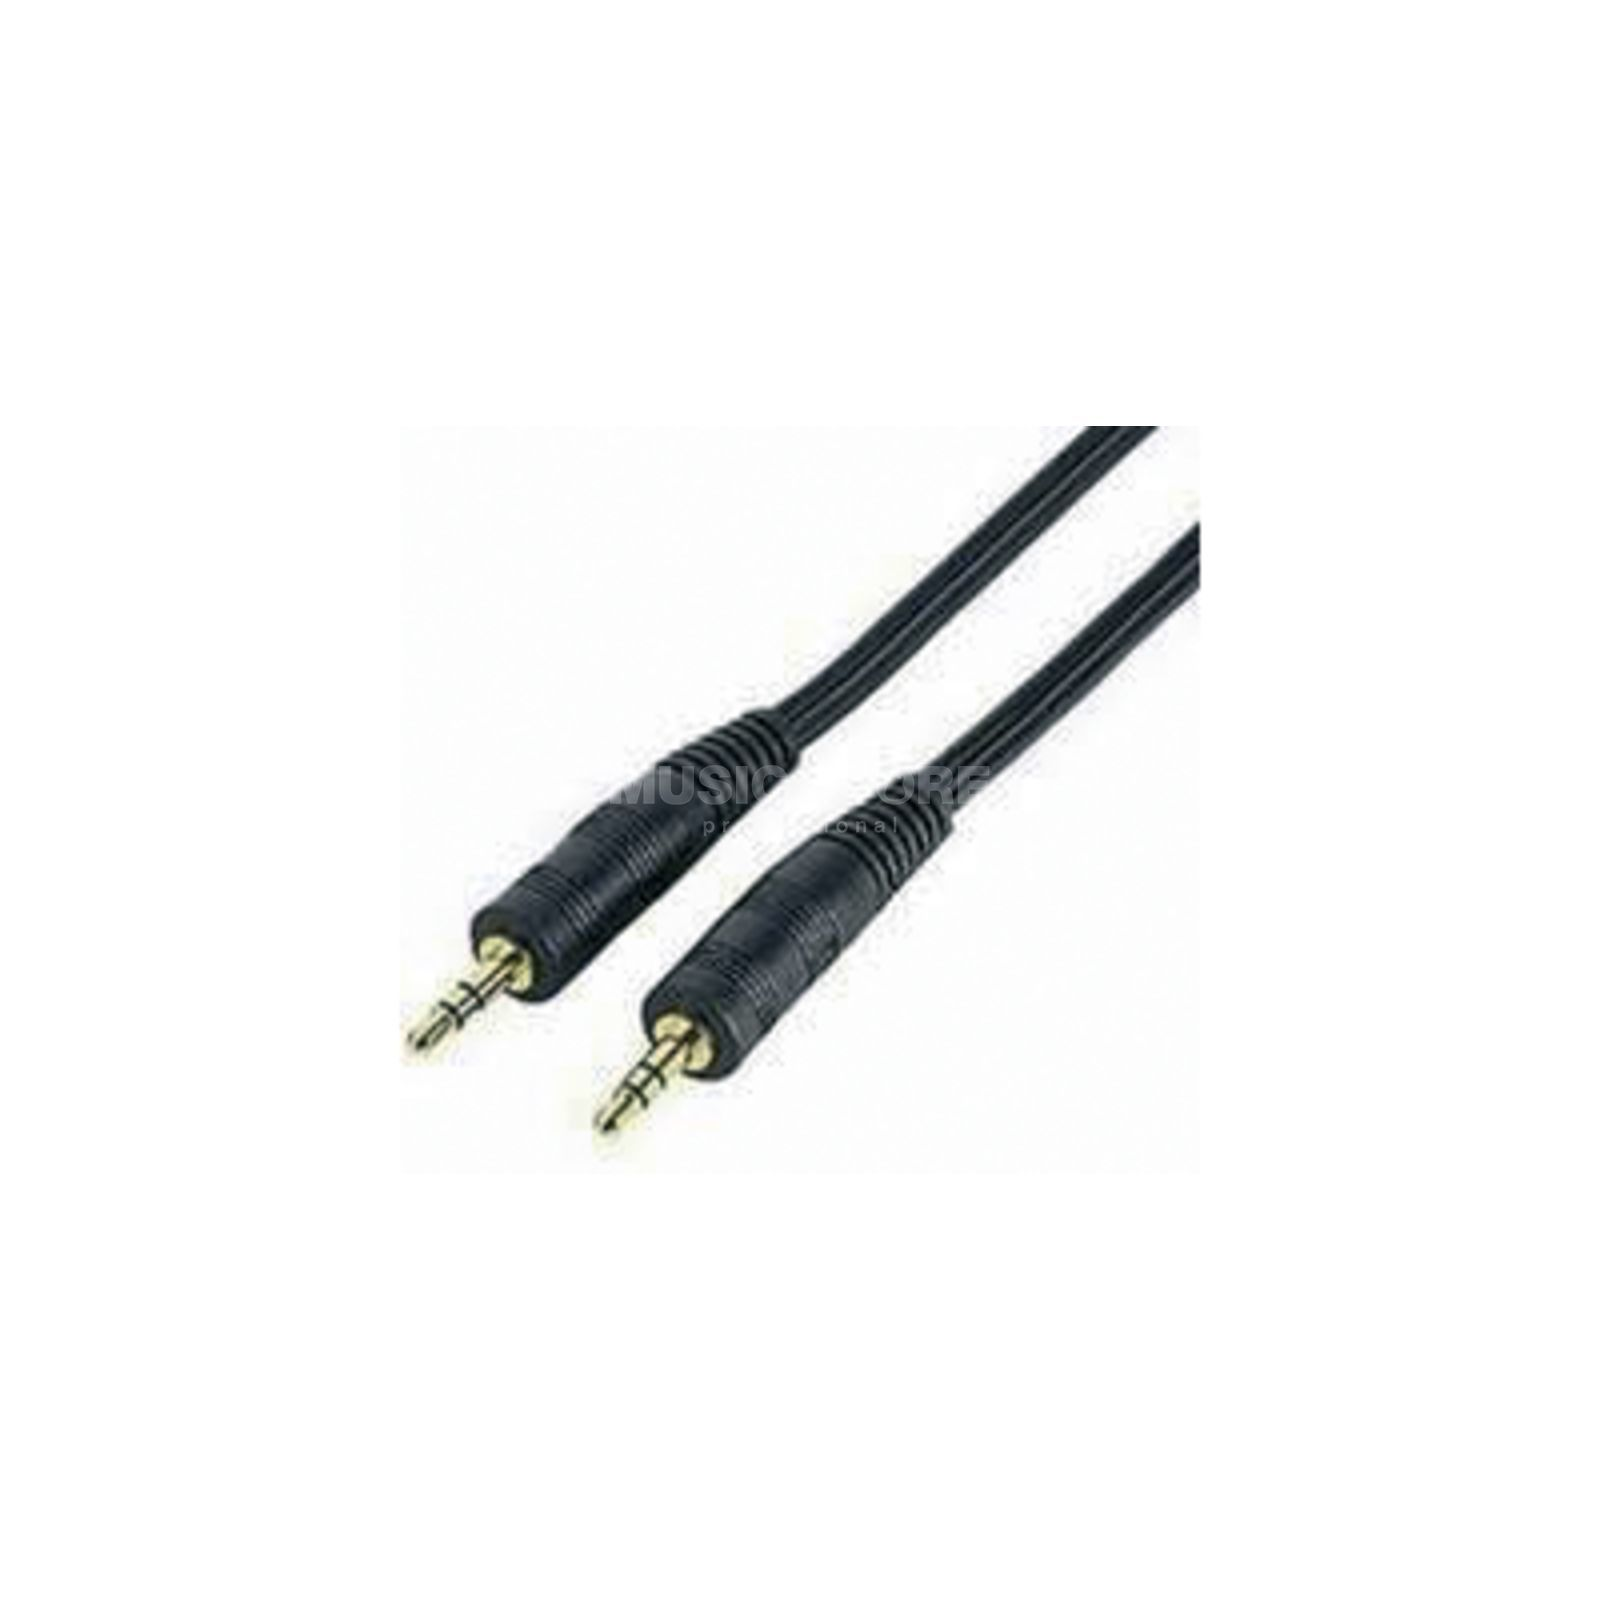 MUSIC STORE Stereo Minijack Cable 1,5m  Produktbillede